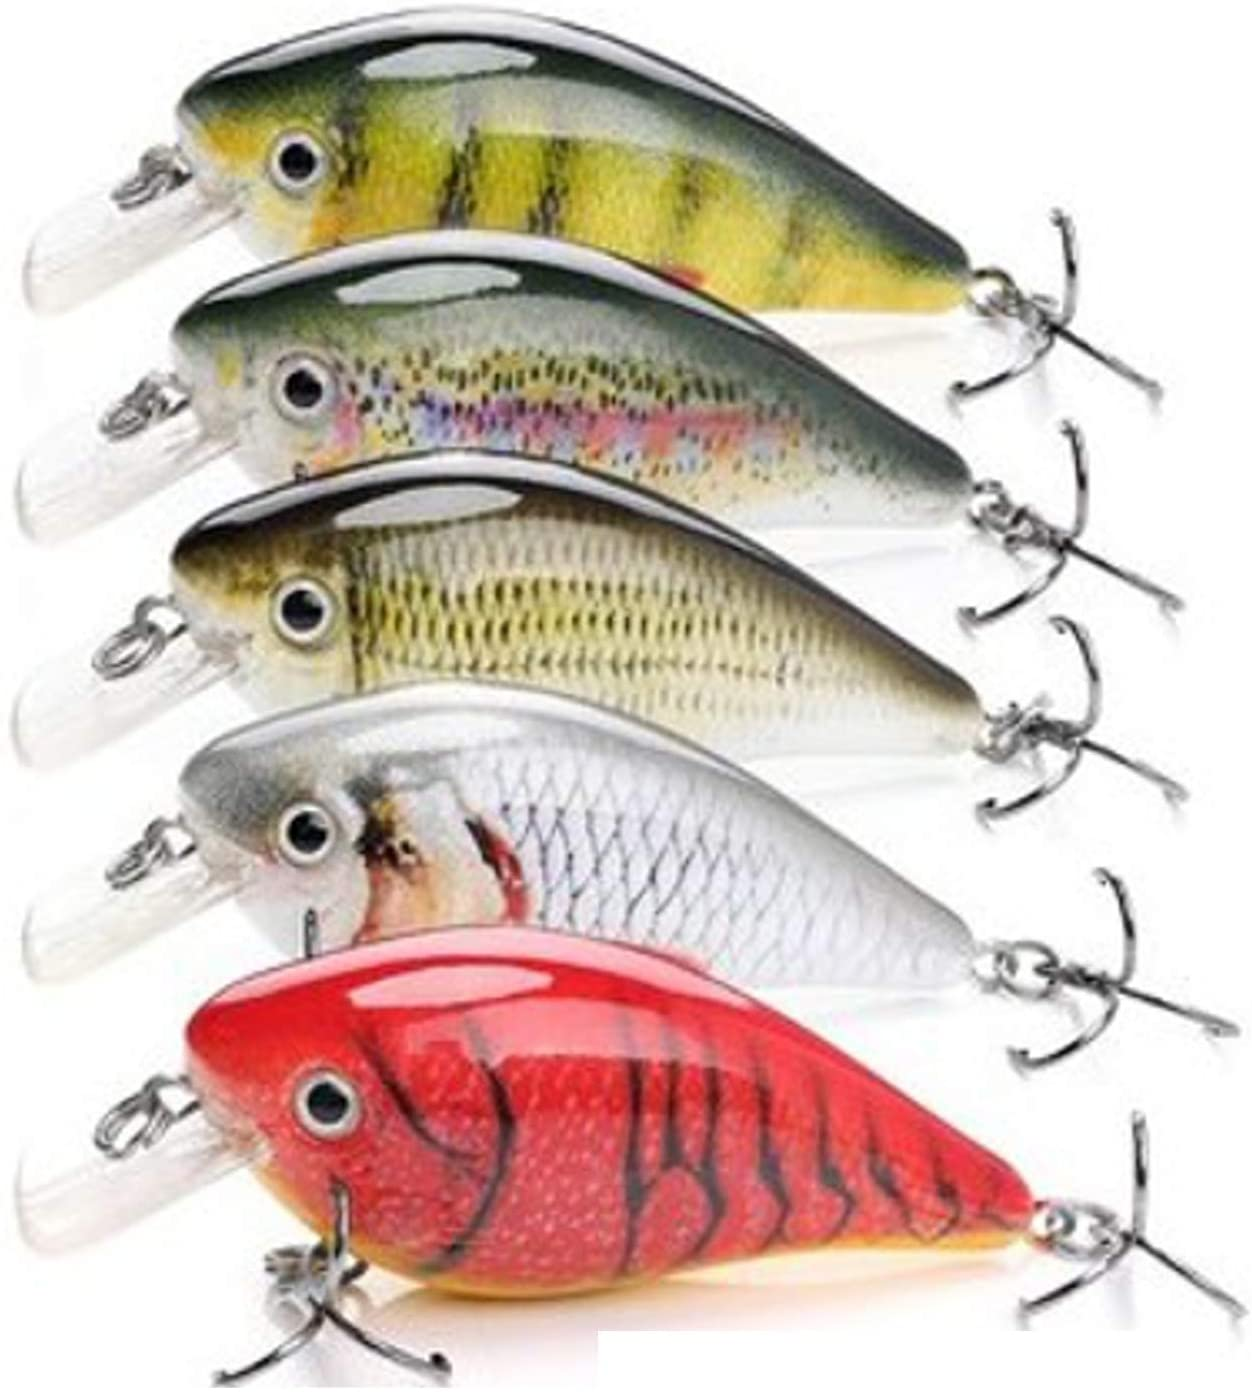 Codaicen Bait Fish Crankbait Life Like Fishing Lures best crankbait